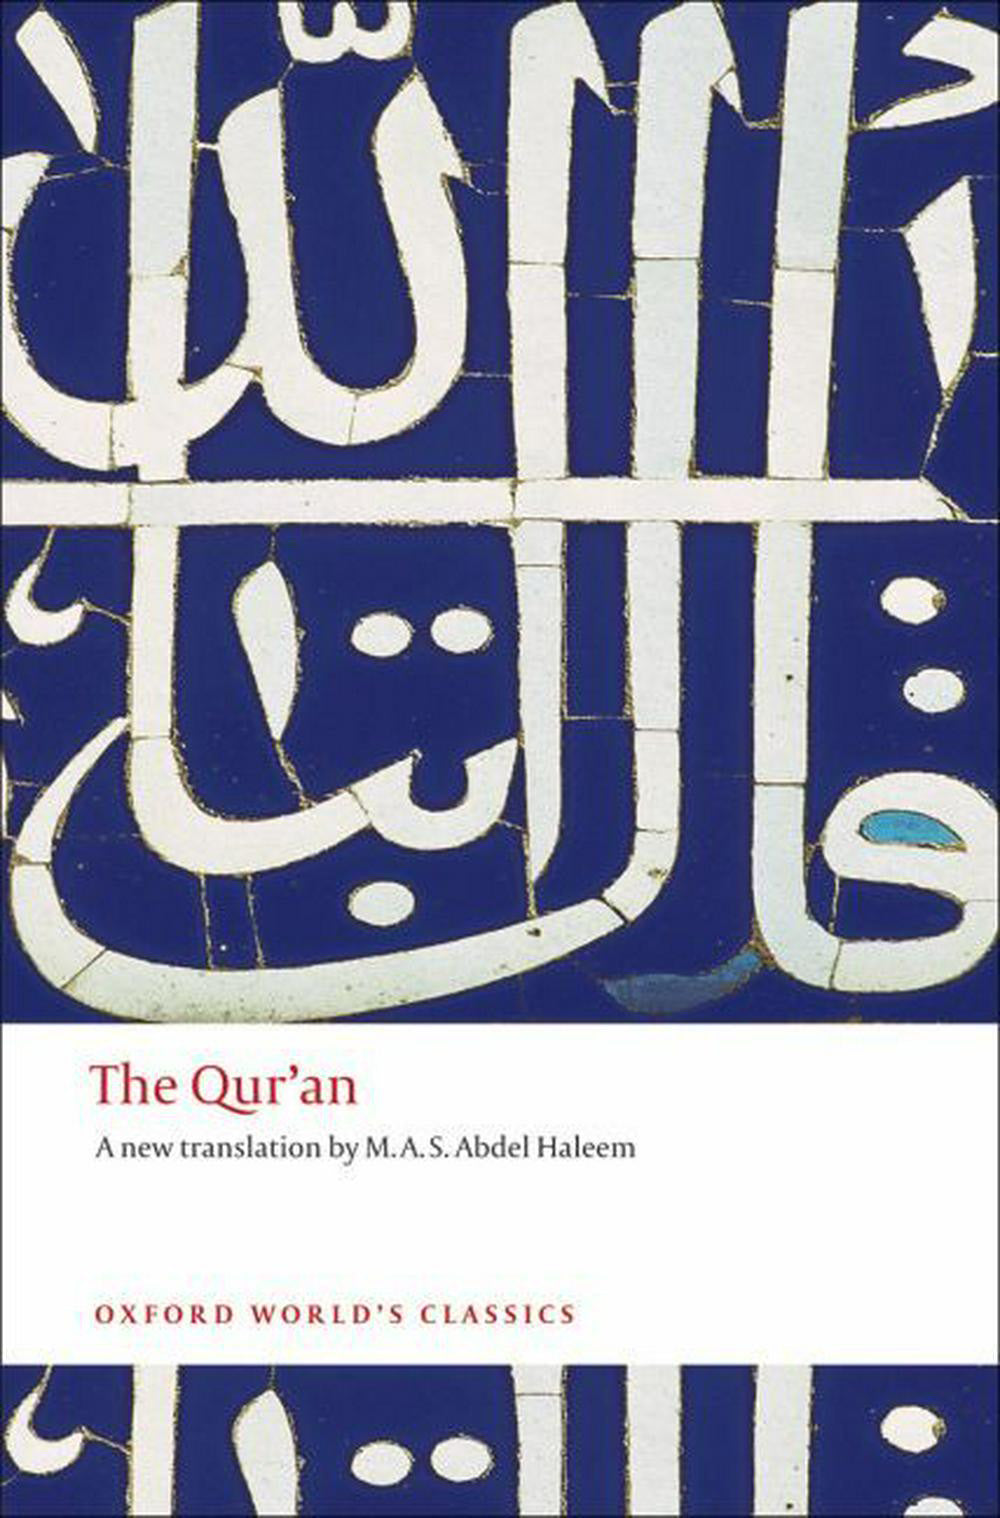 The Qur'an - A New Translation by M. a. S. Abdel Haleem